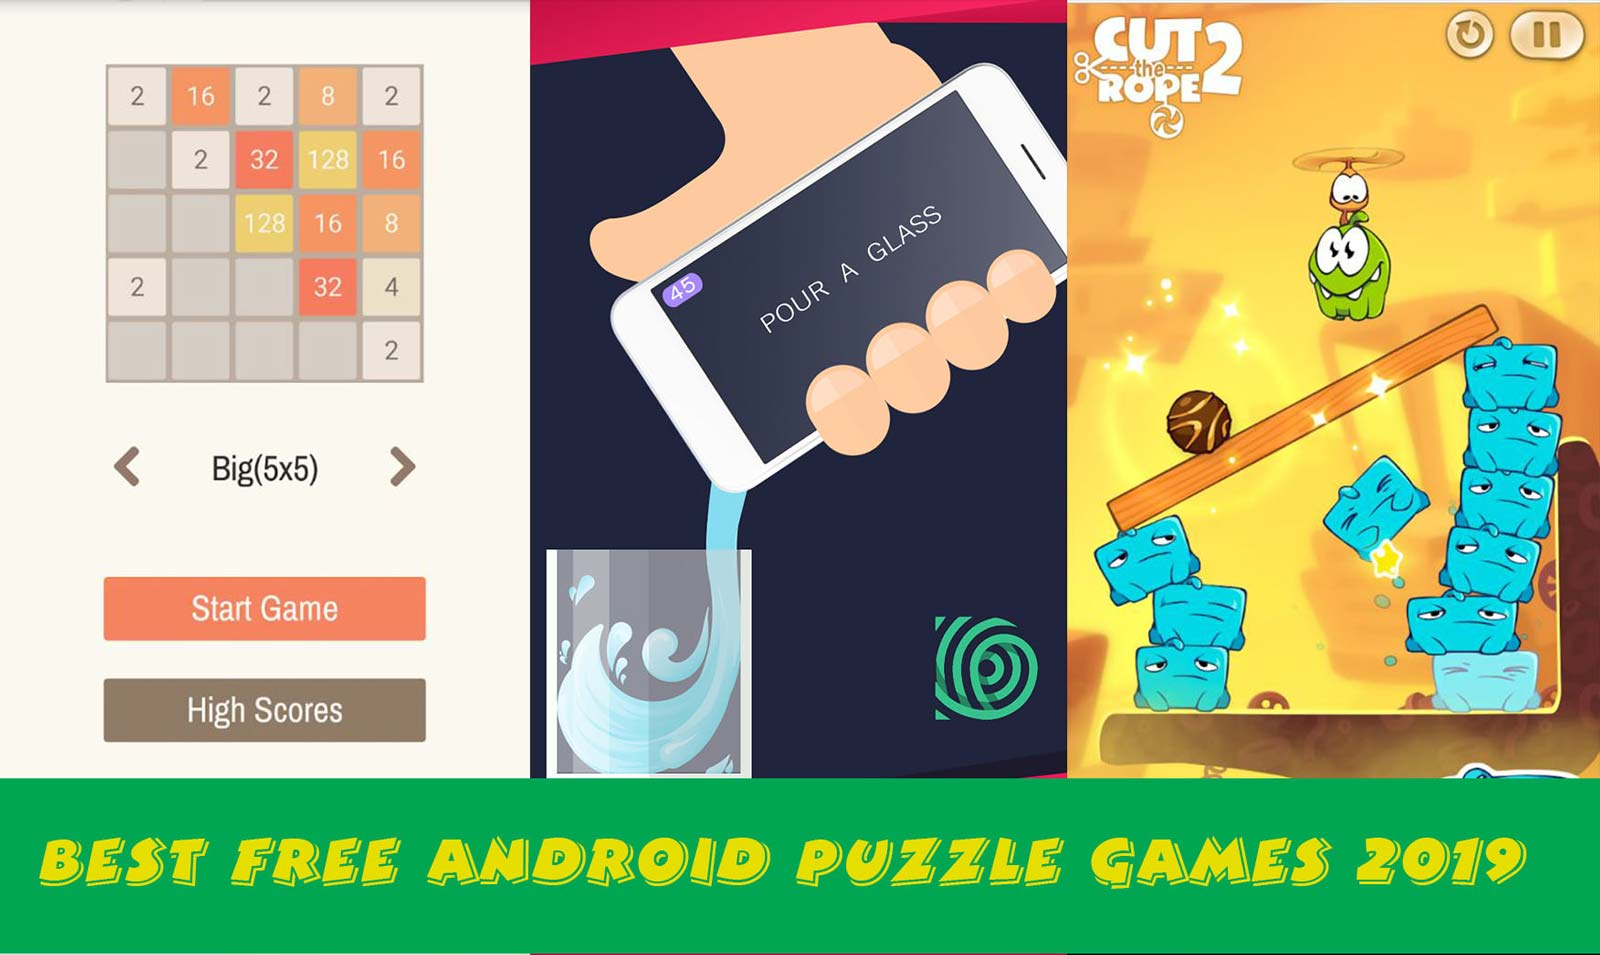 10 Best Free Android Puzzle Games 2019